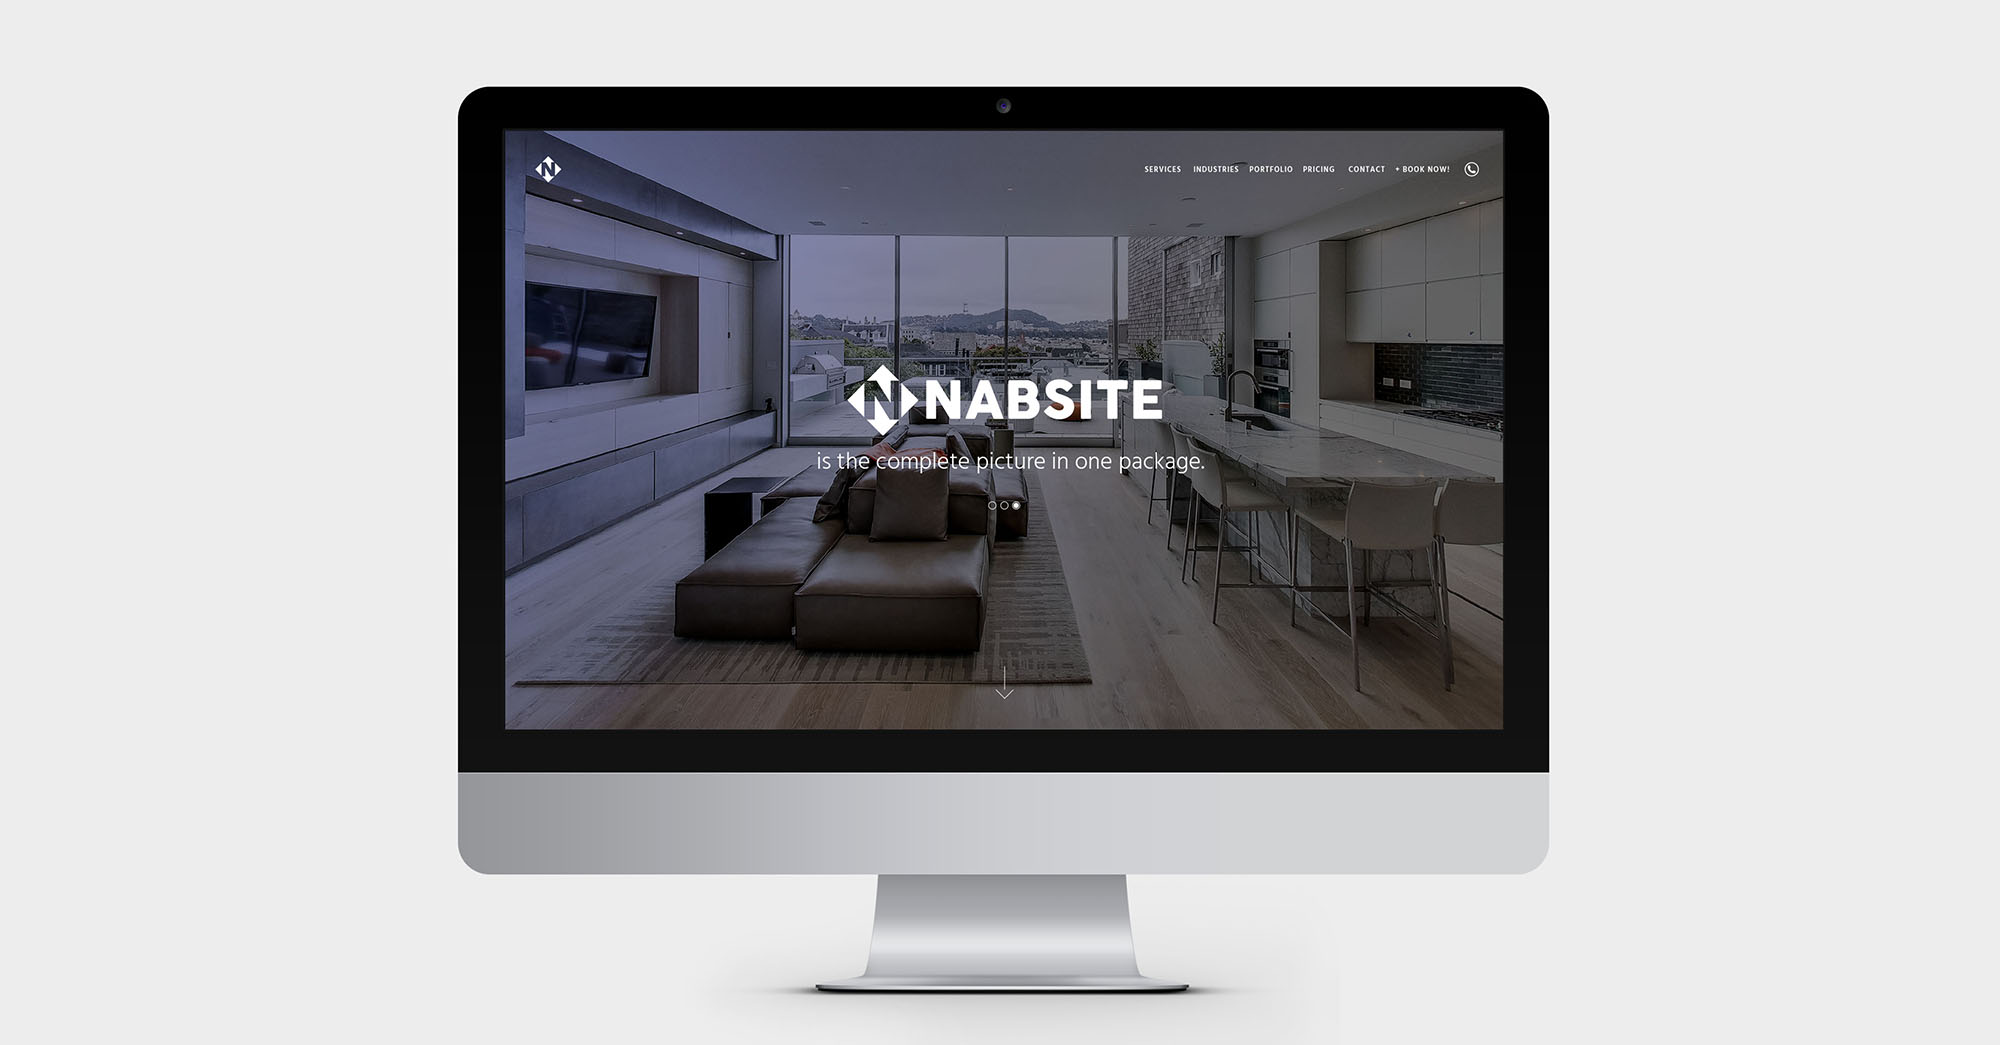 NABSITE   3D imaging & HDR photography   + View Project